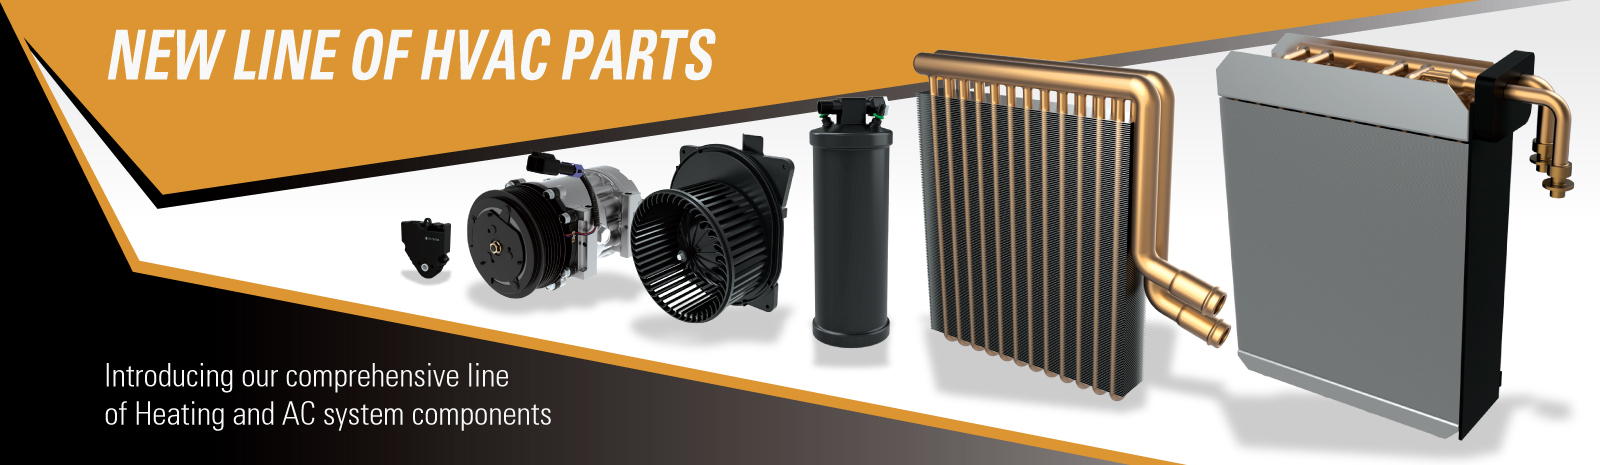 New Line of HVAC Parts